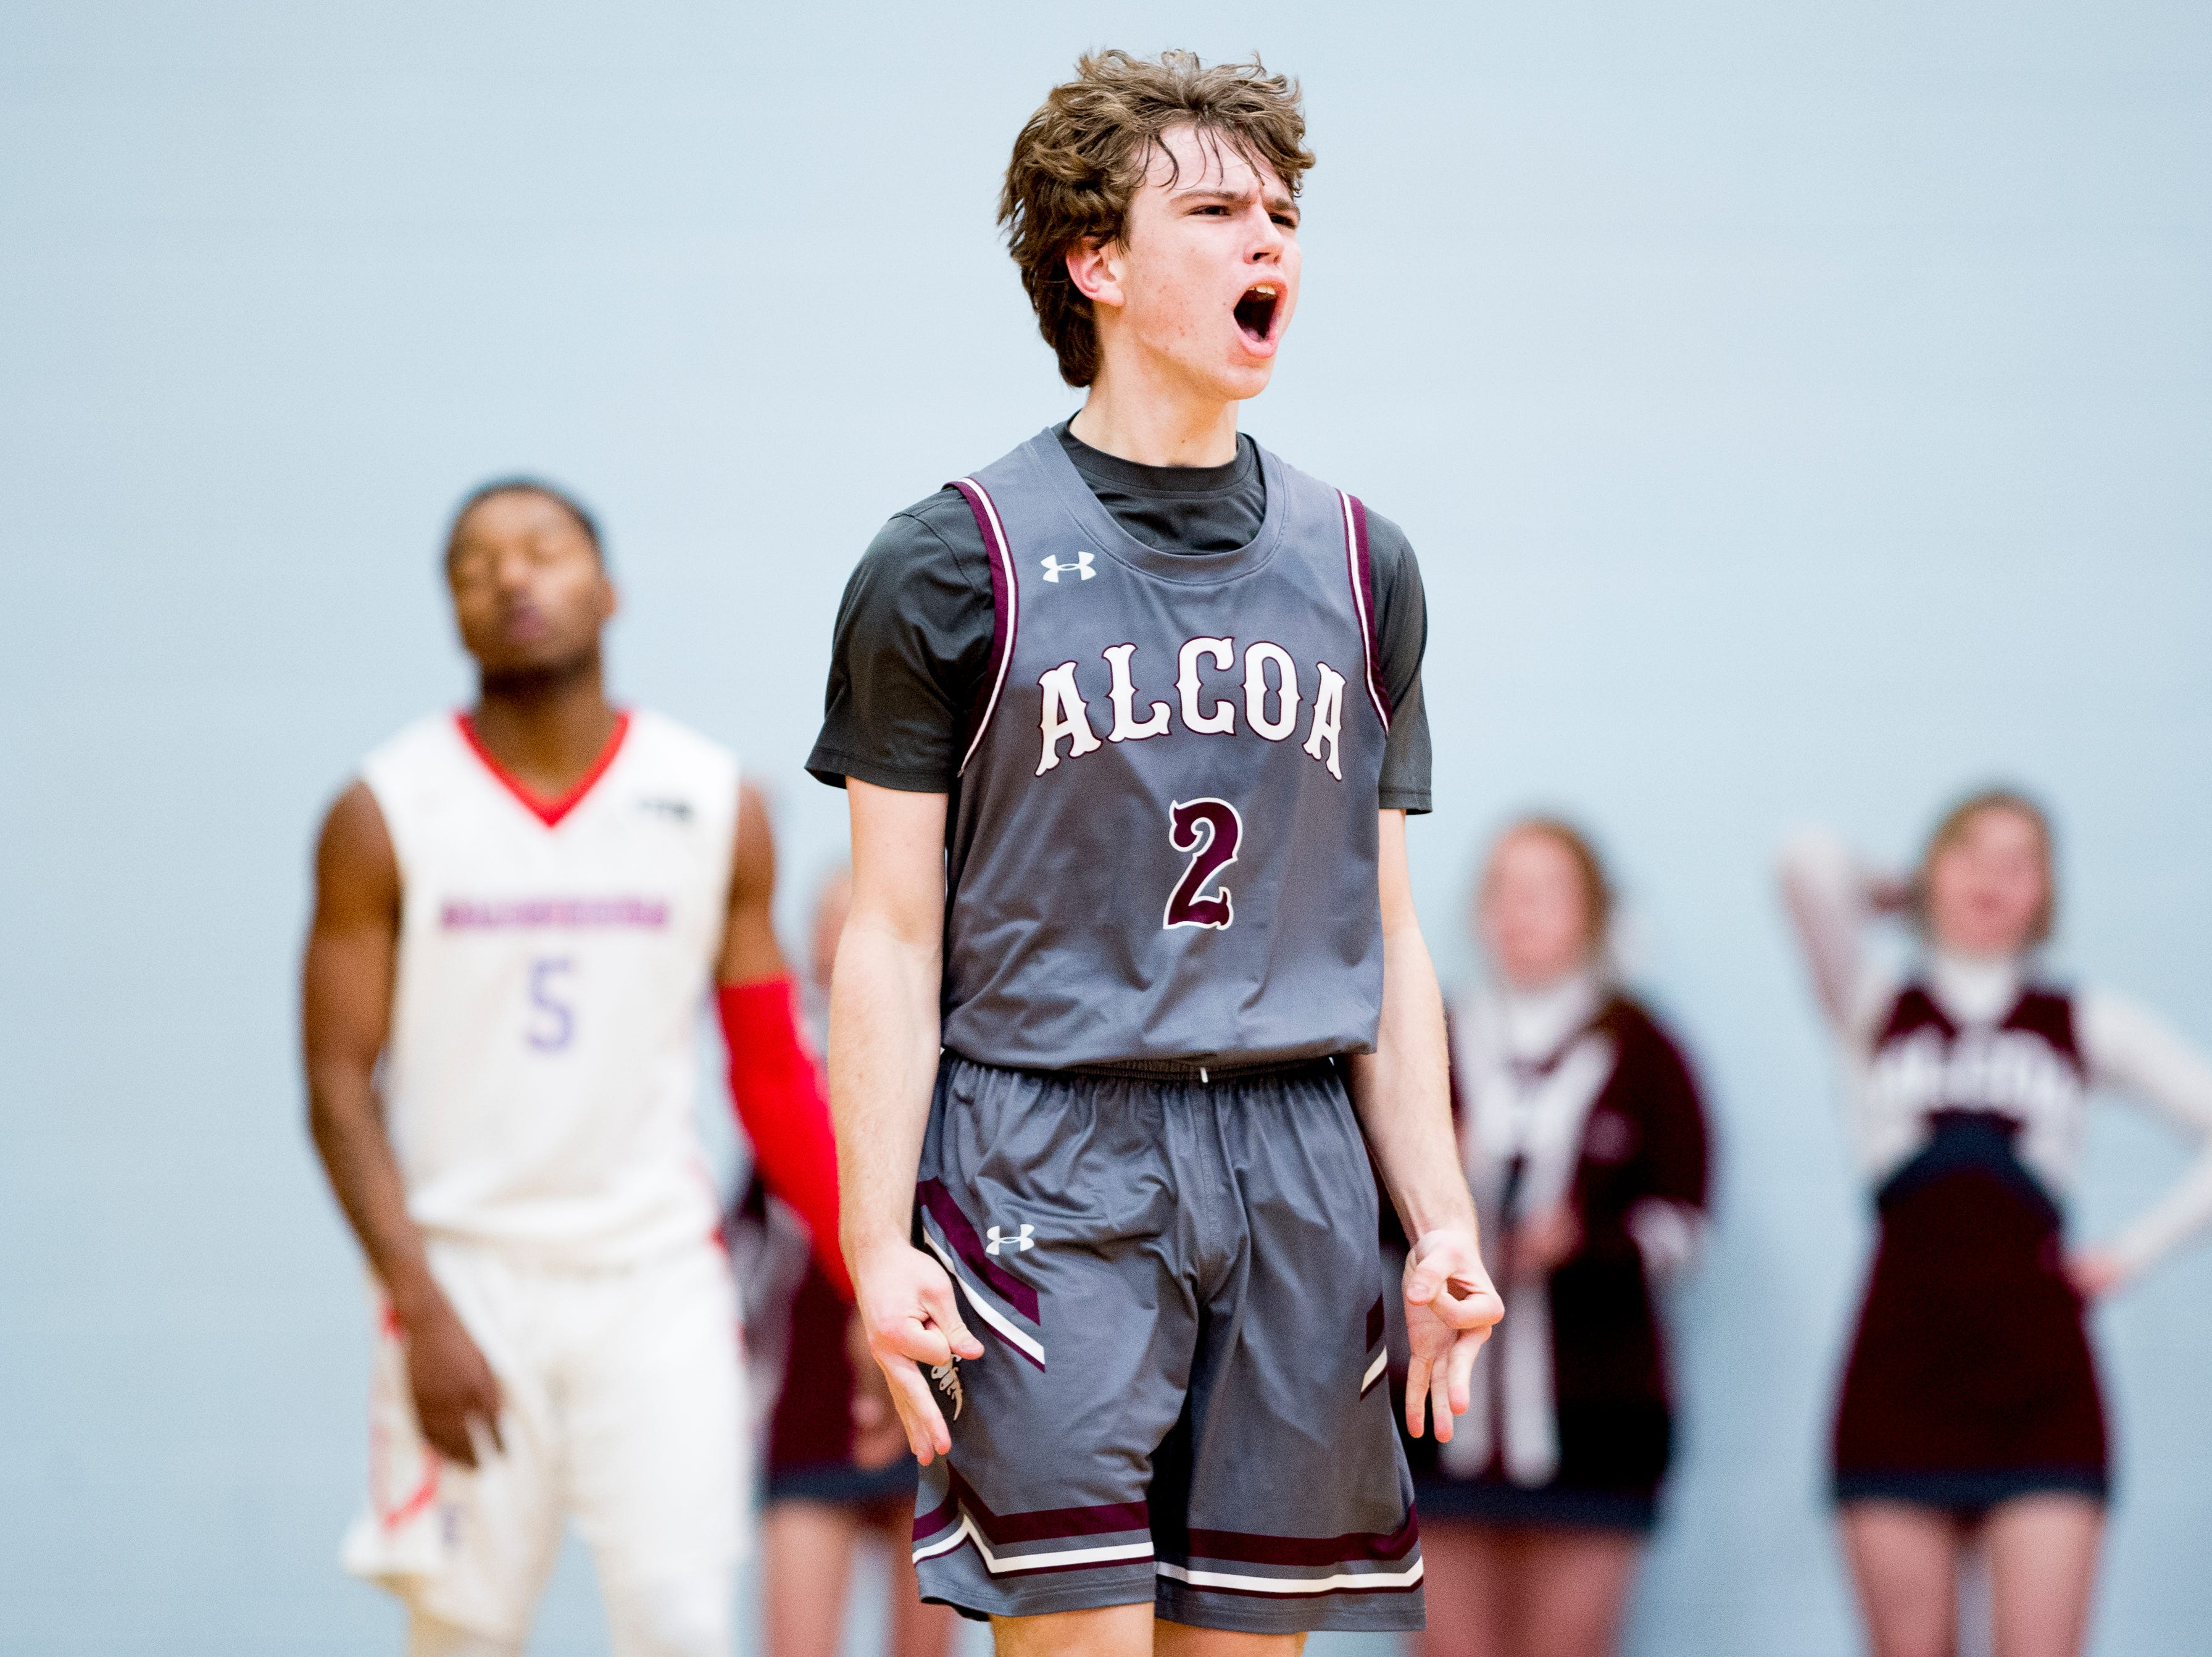 Alcoa's Garrett Rogers (2) reacts after making a three point shot during a game between Austin-East and Alcoa at Austin-East High School in Knoxville, Tennessee on Friday, January 18, 2019.